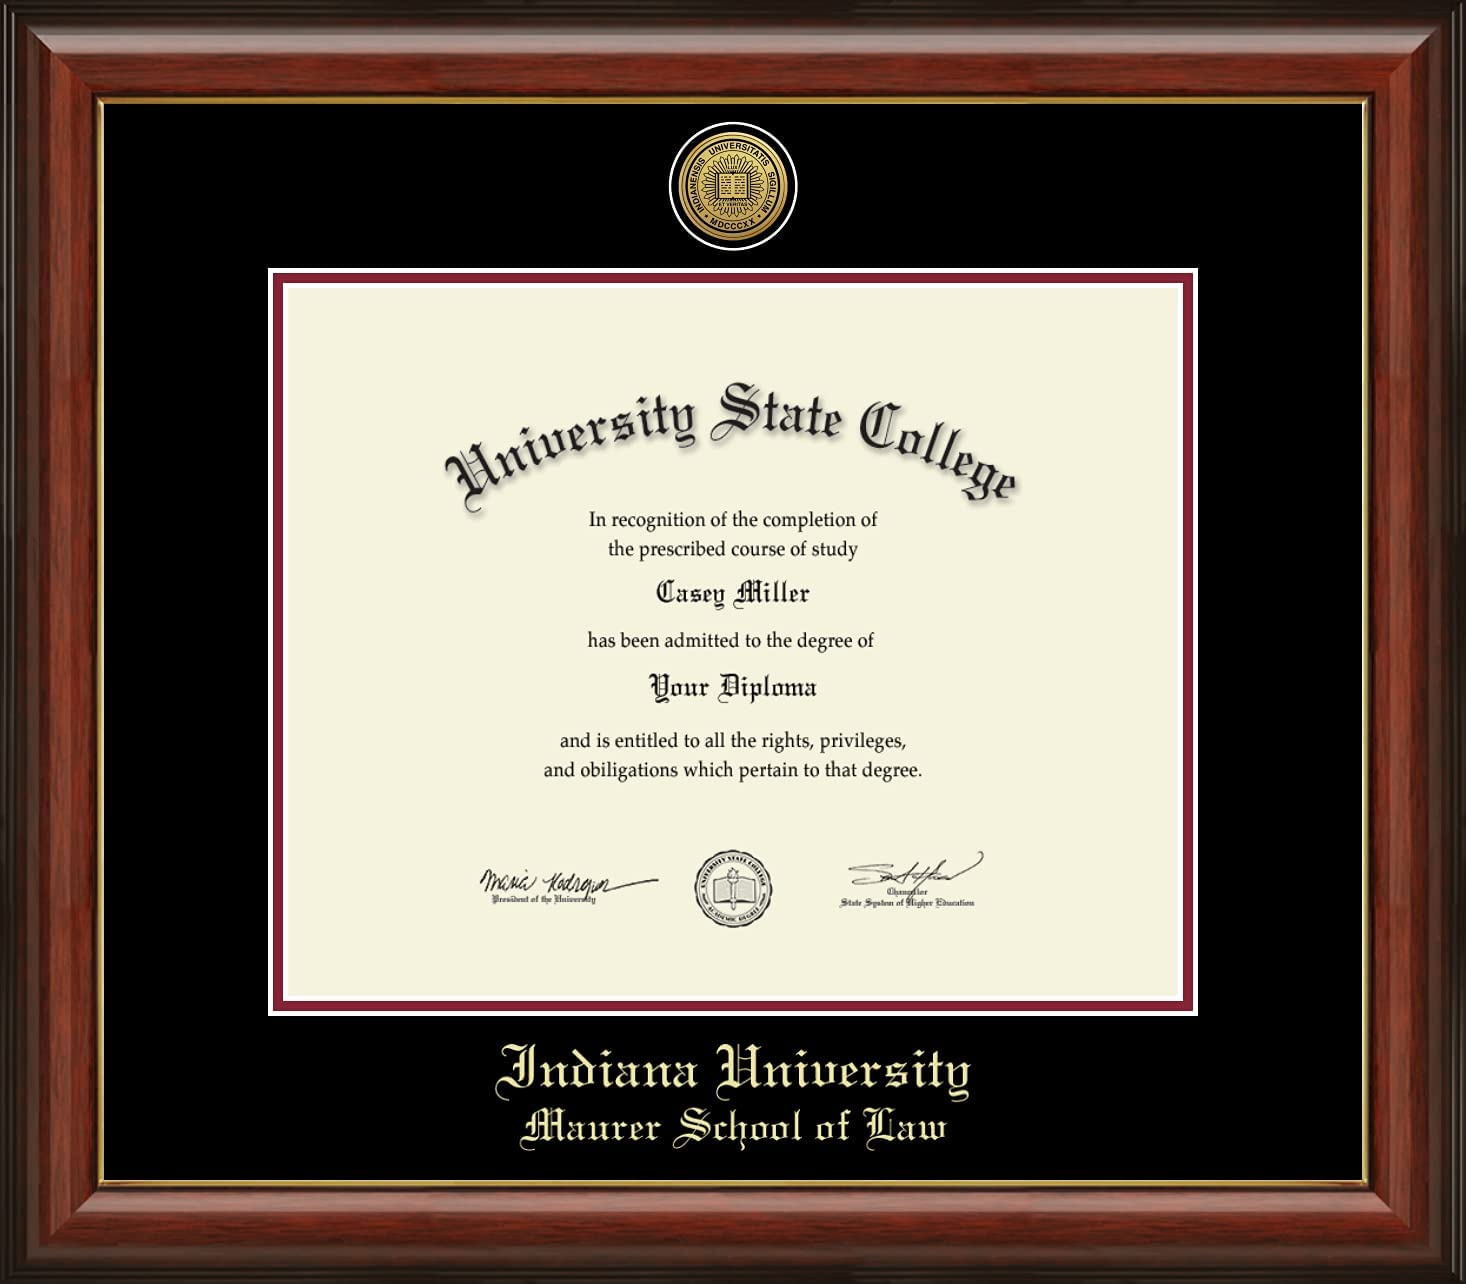 Indiana University Bloomington Maurer Tampa Mall School Officially of Law - Max 90% OFF